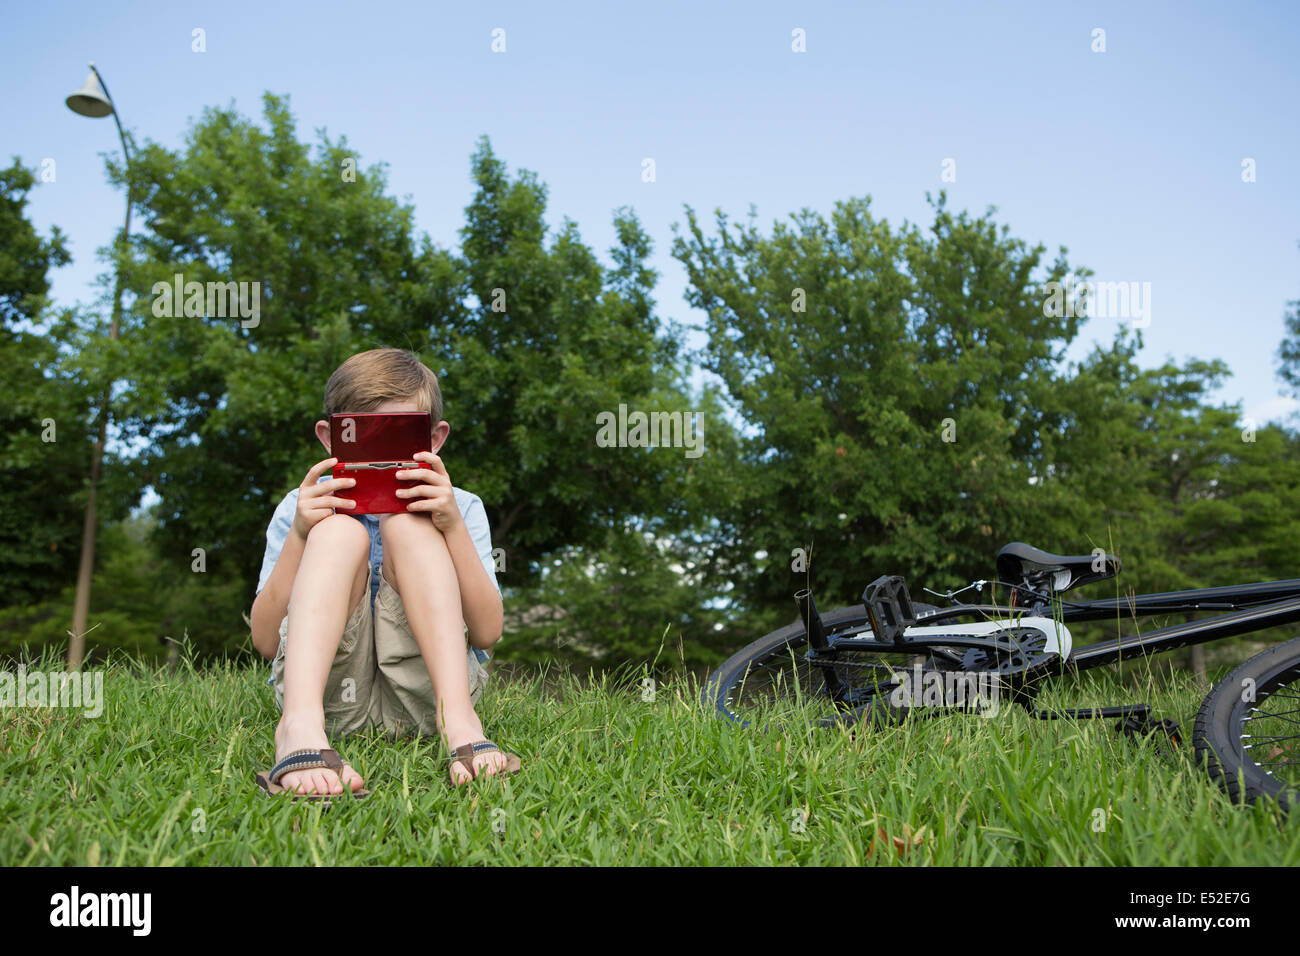 A young boy sitting on the grass playing a hand held electronic game. Stock Photo